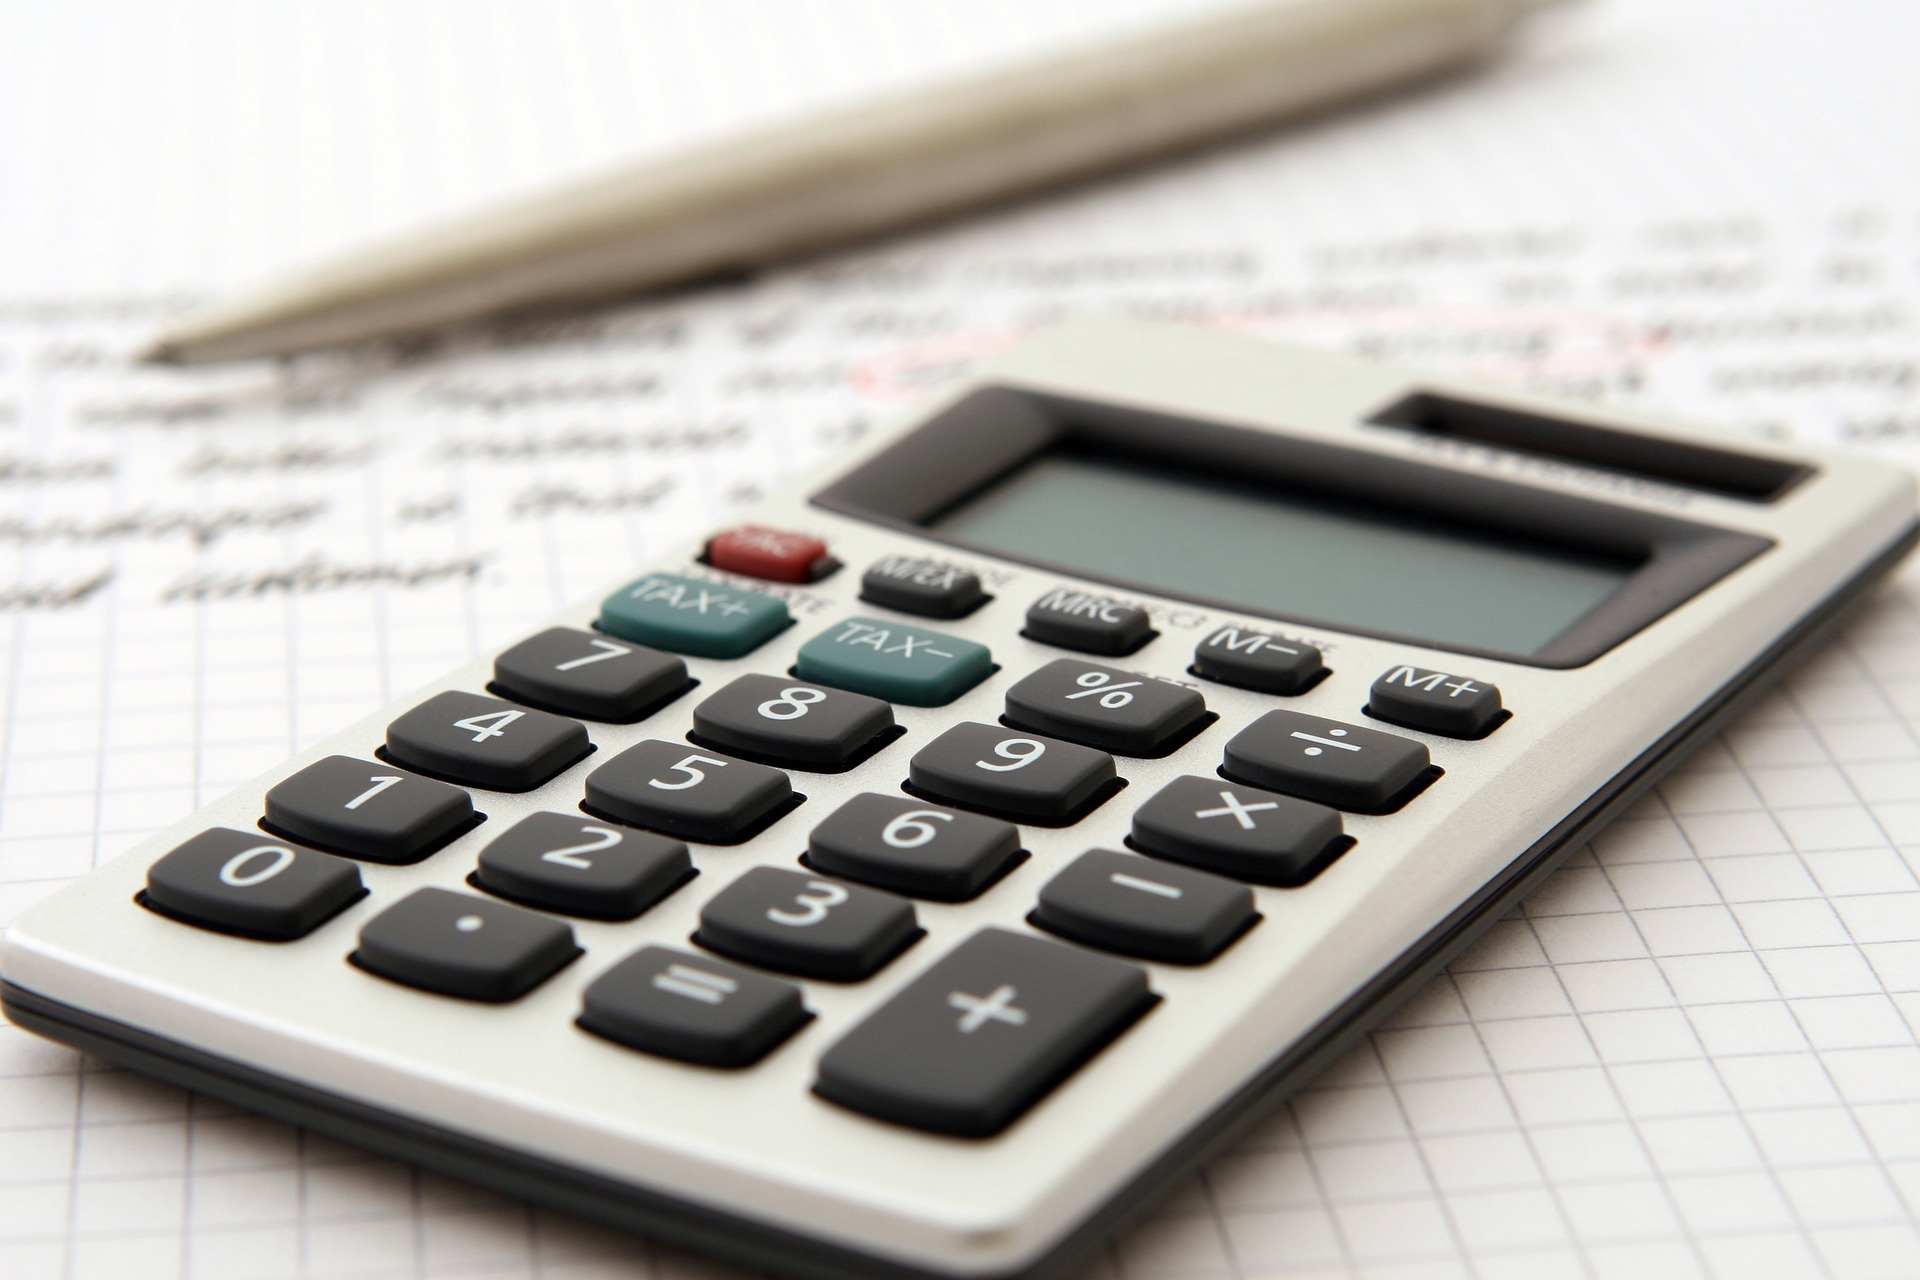 Top 5 Pros and Cons of a Health Savings Account